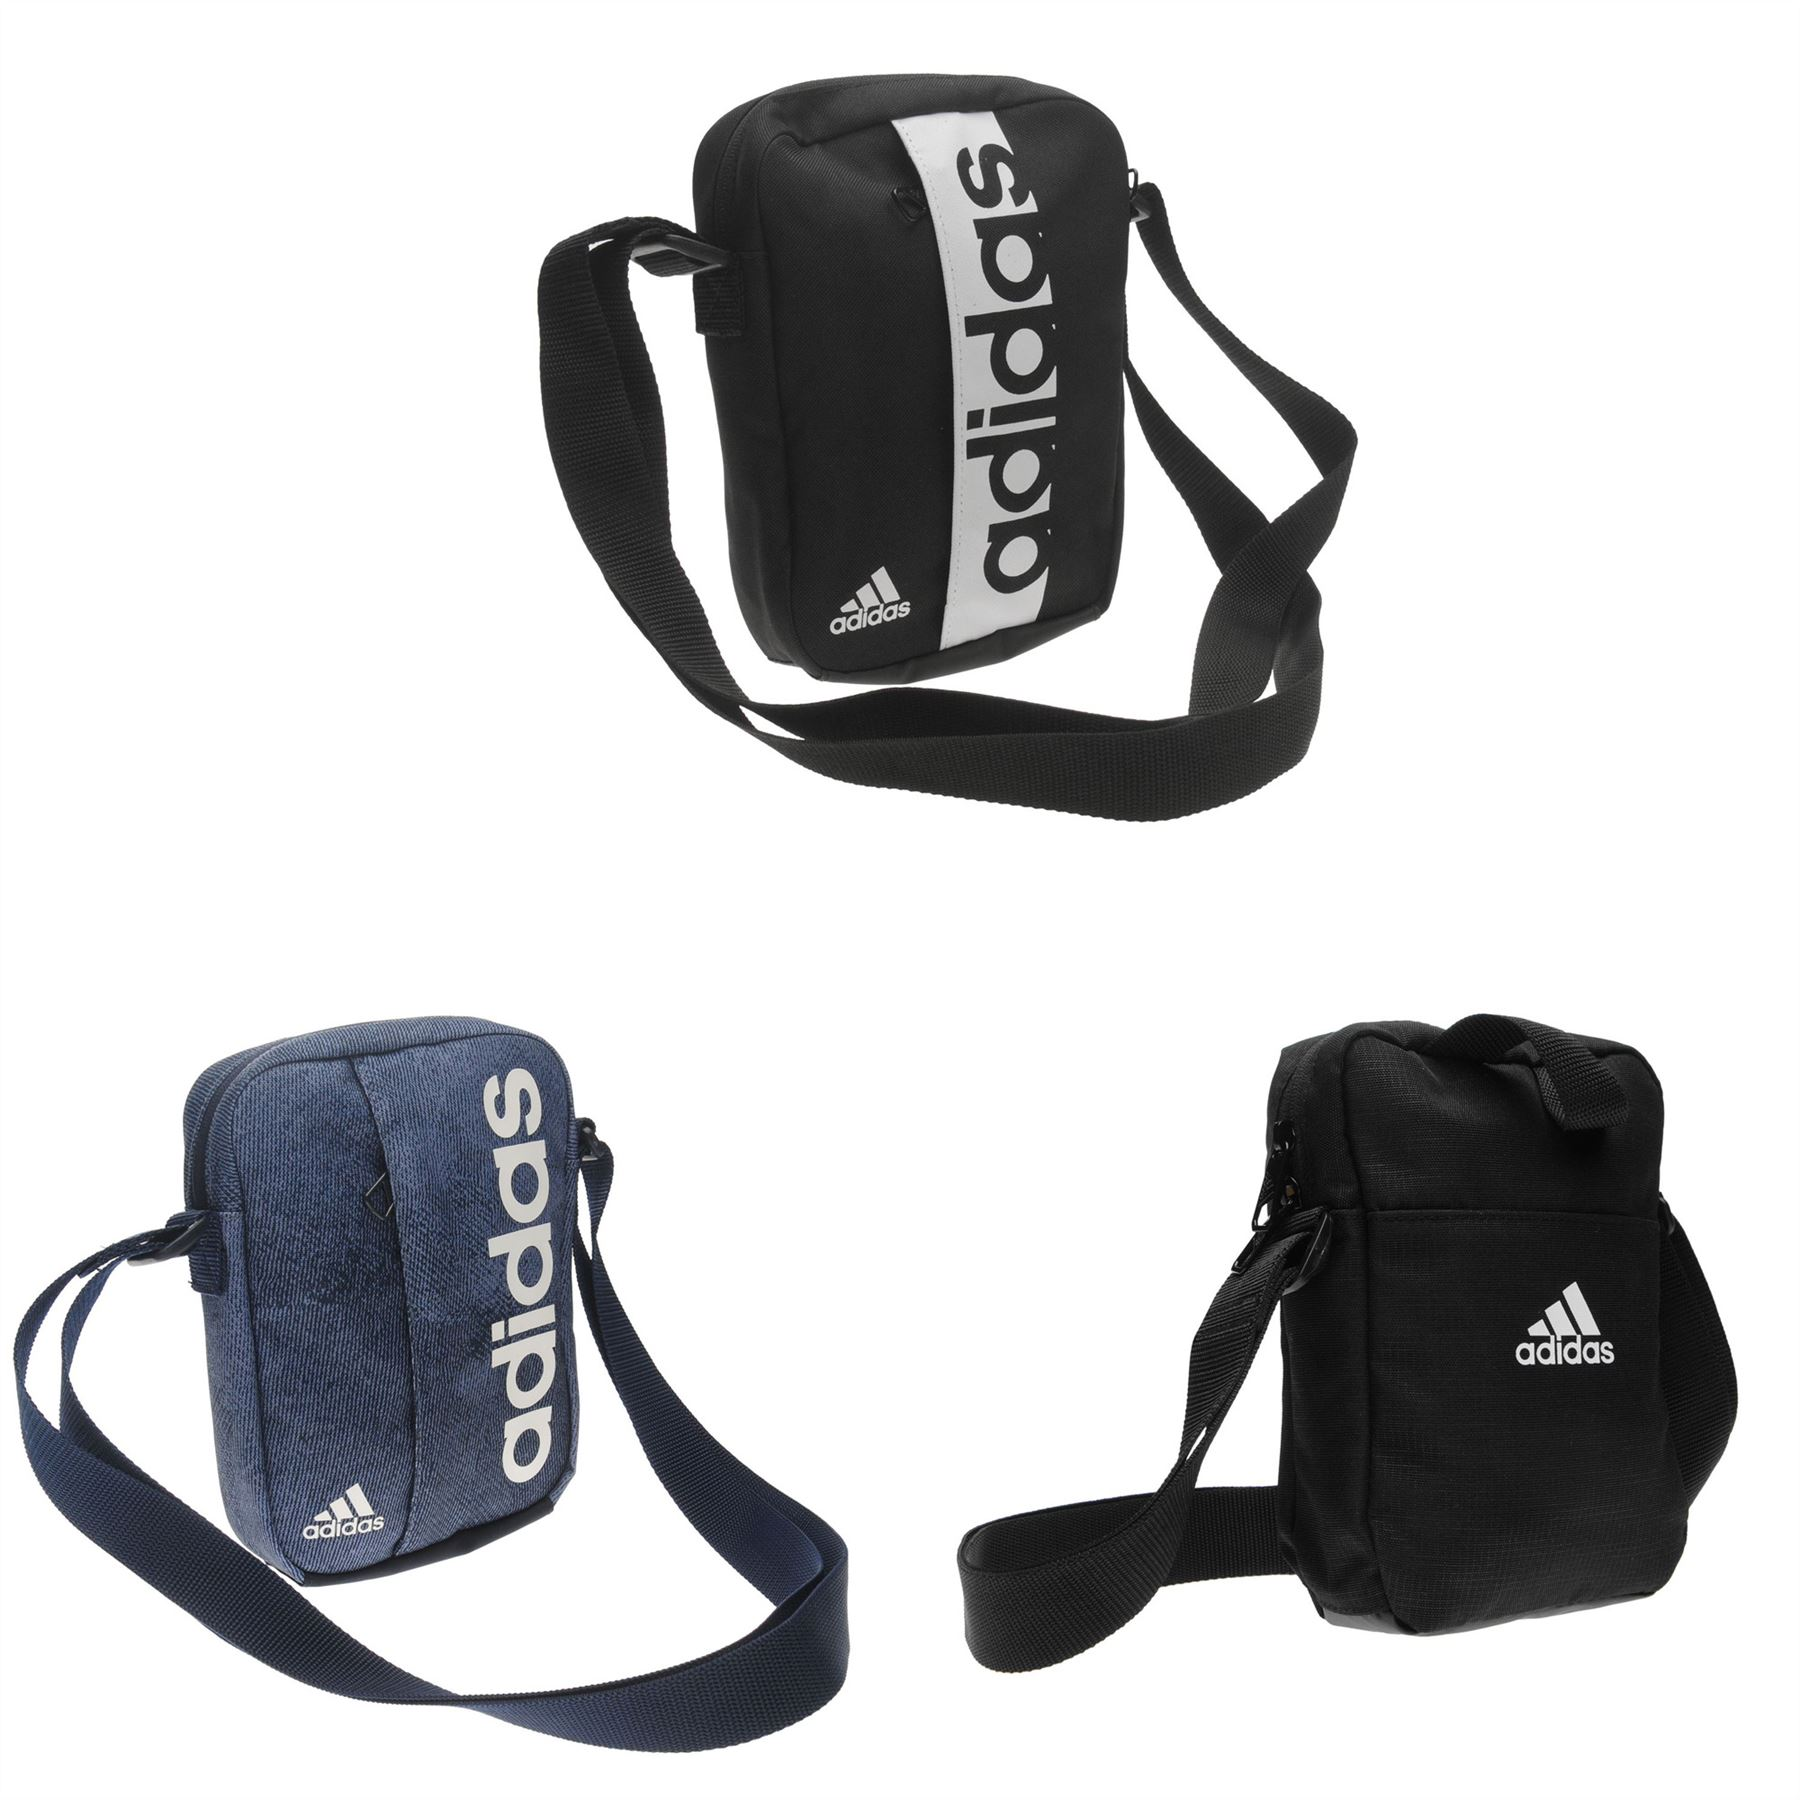 77daf97b40d ... adidas Small Item Gadget Bag Shoulder Organiser Bag ...